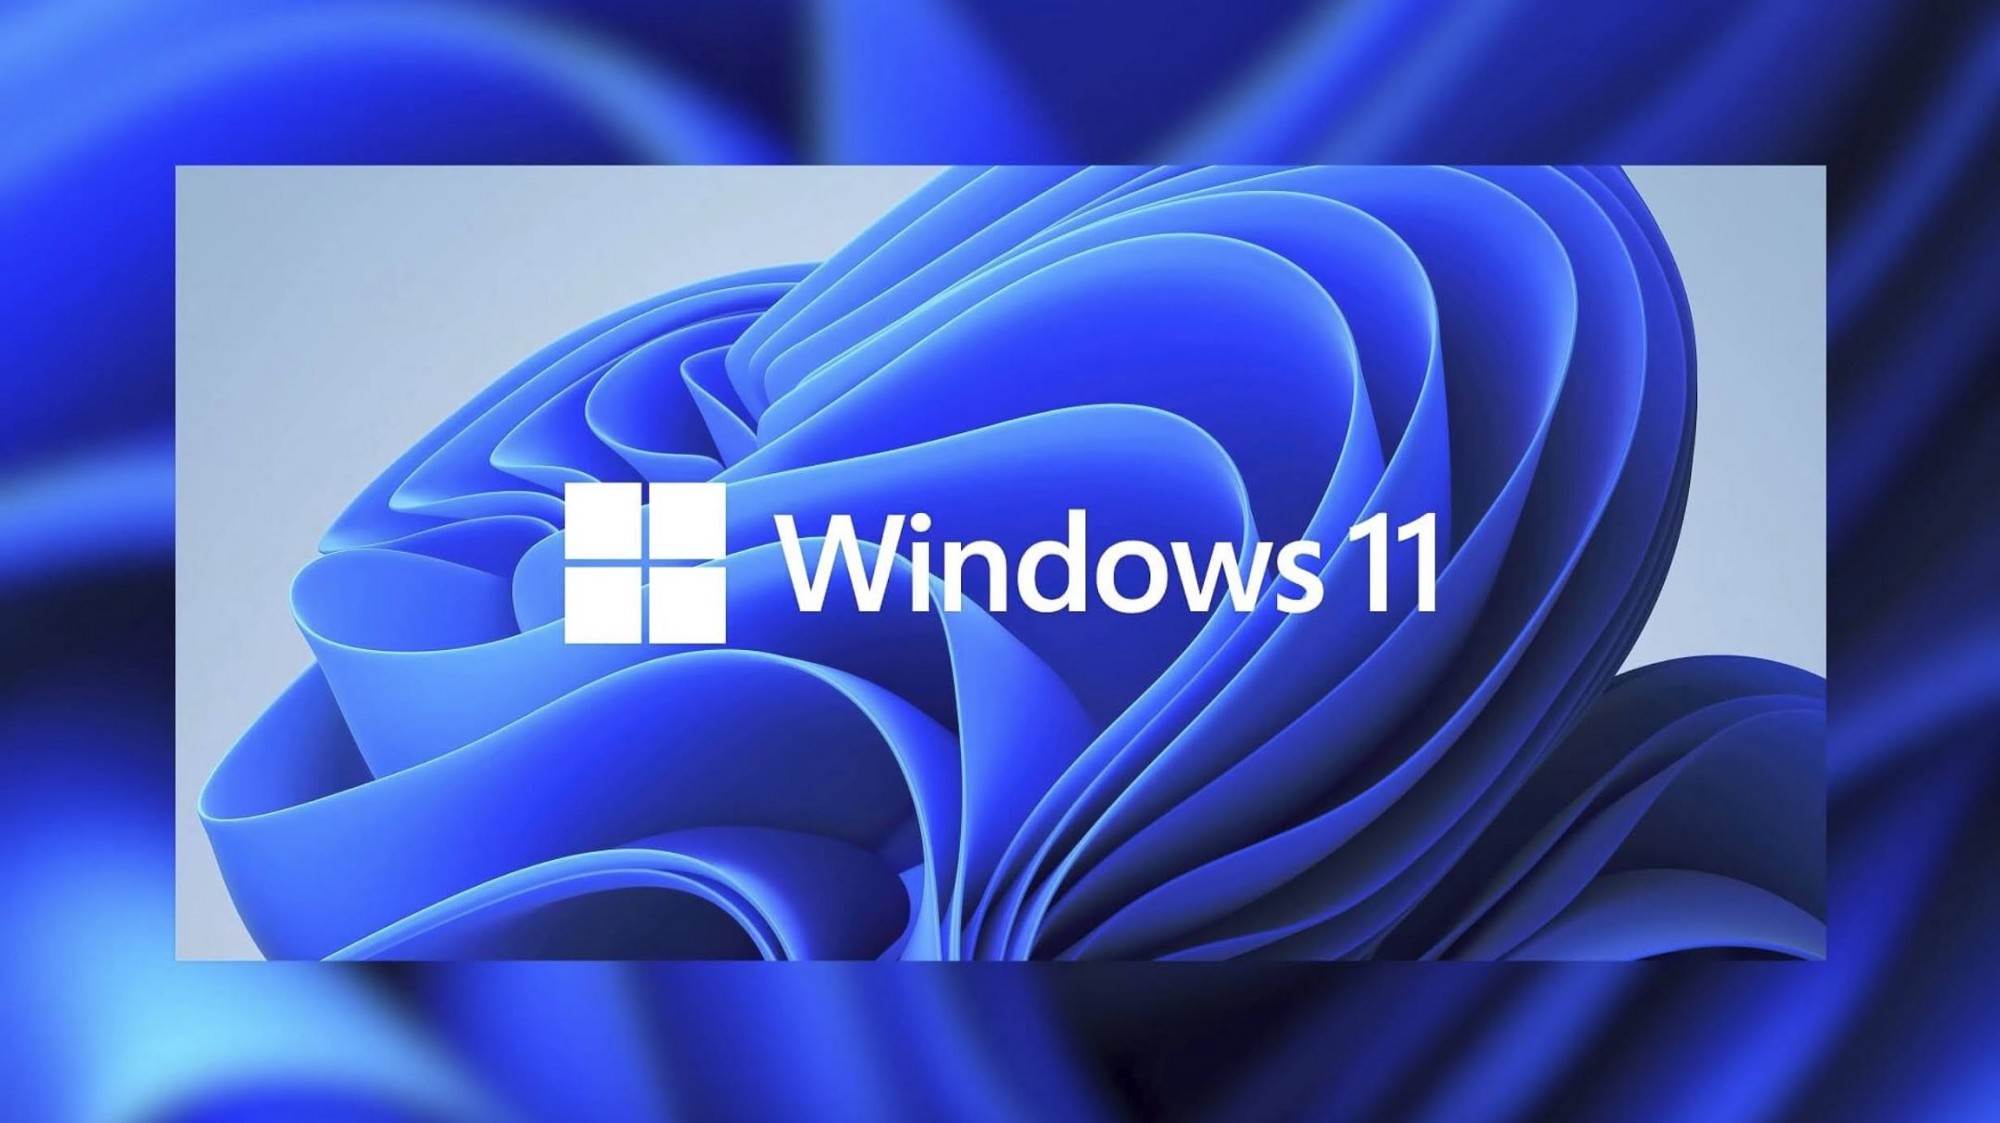 Find Product Key in Windows 11